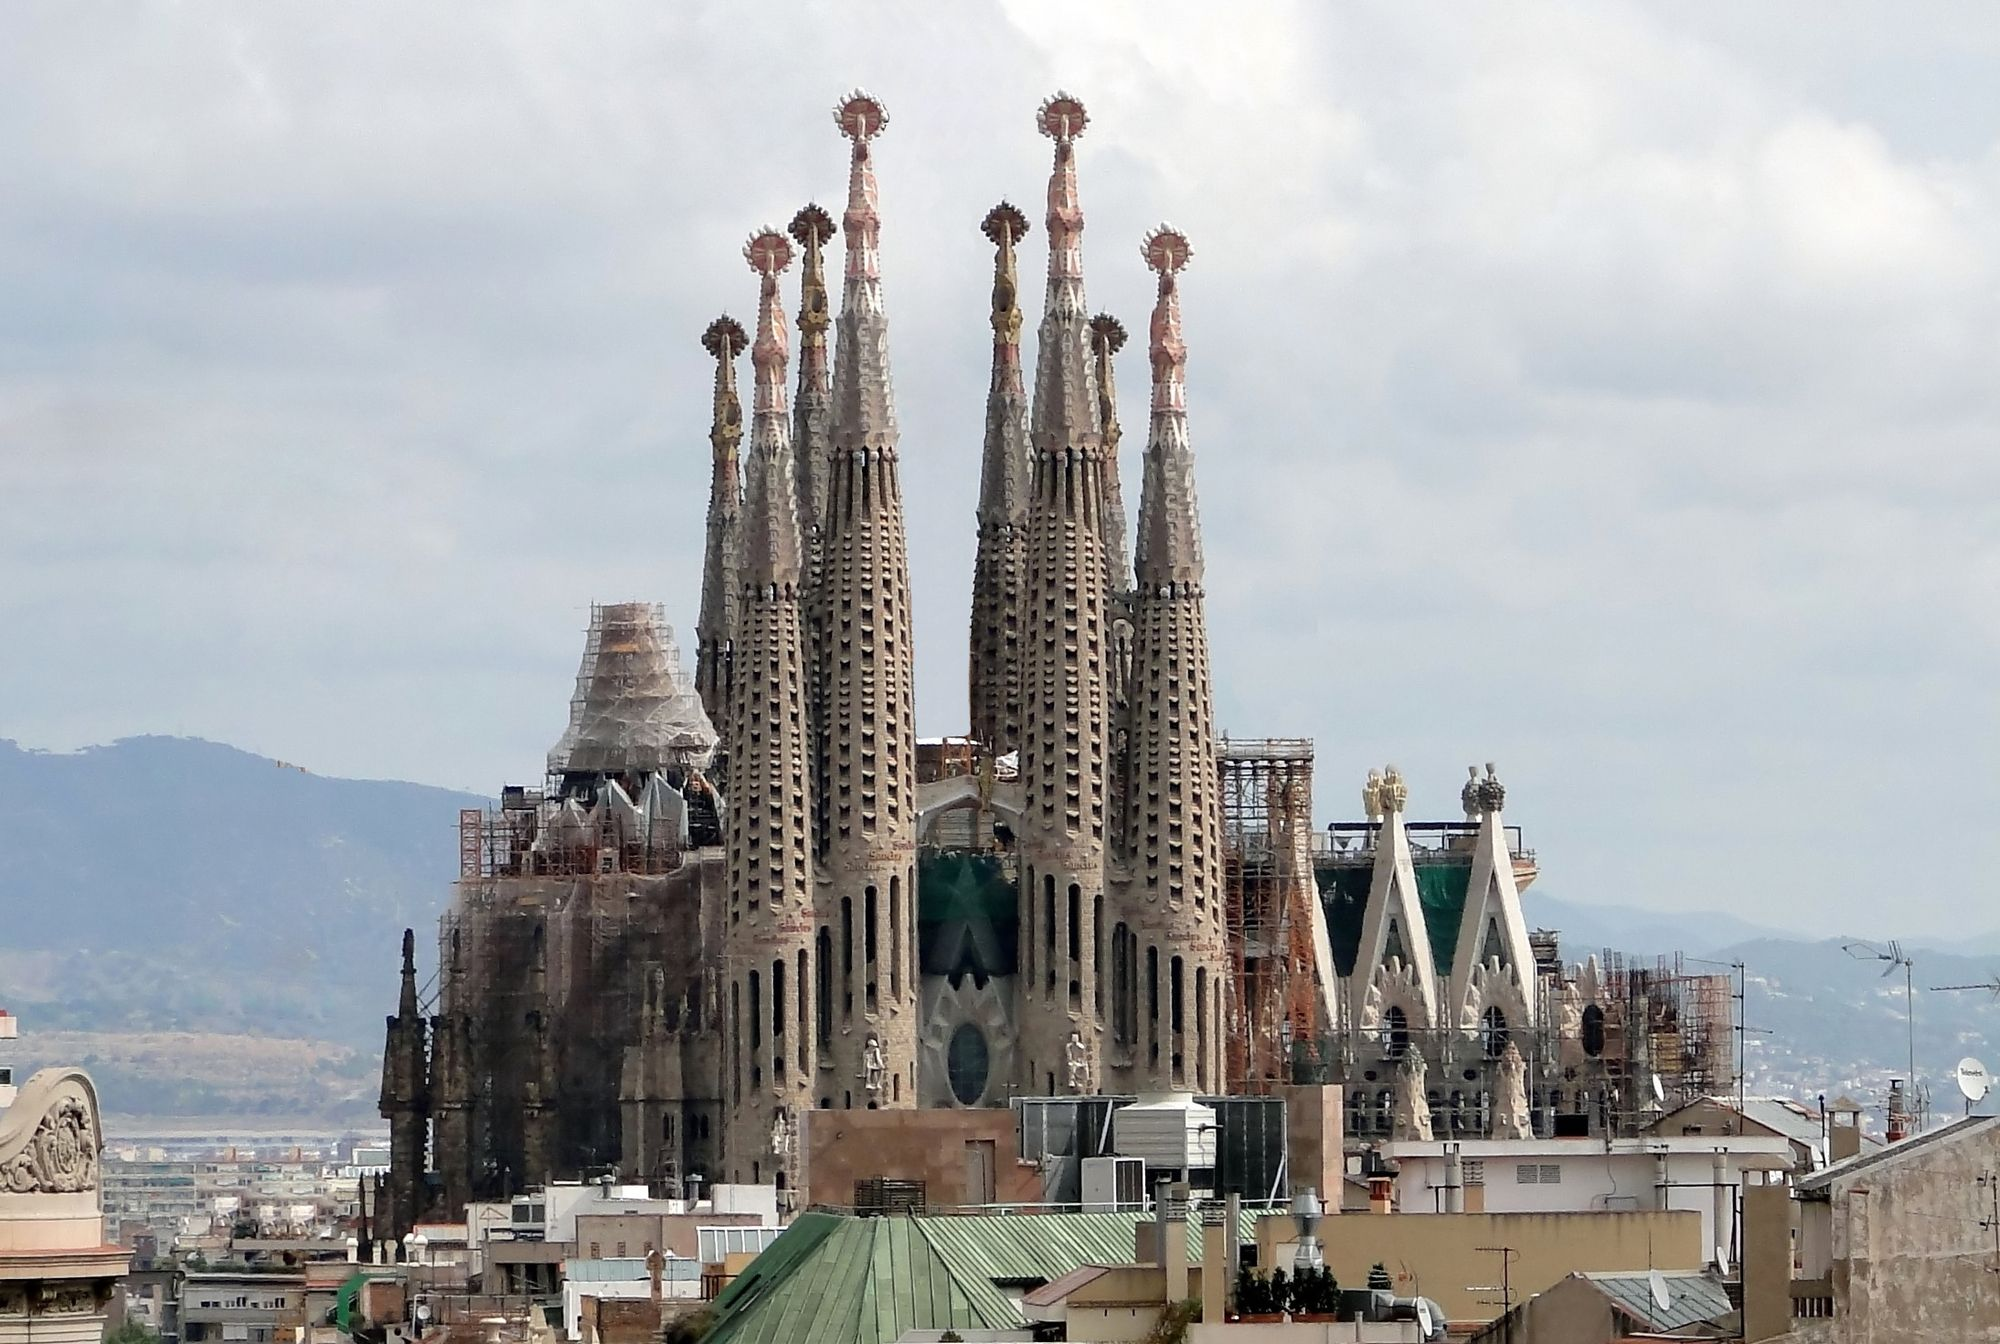 Video: The Six Towers that will Crown the Sagrada Família